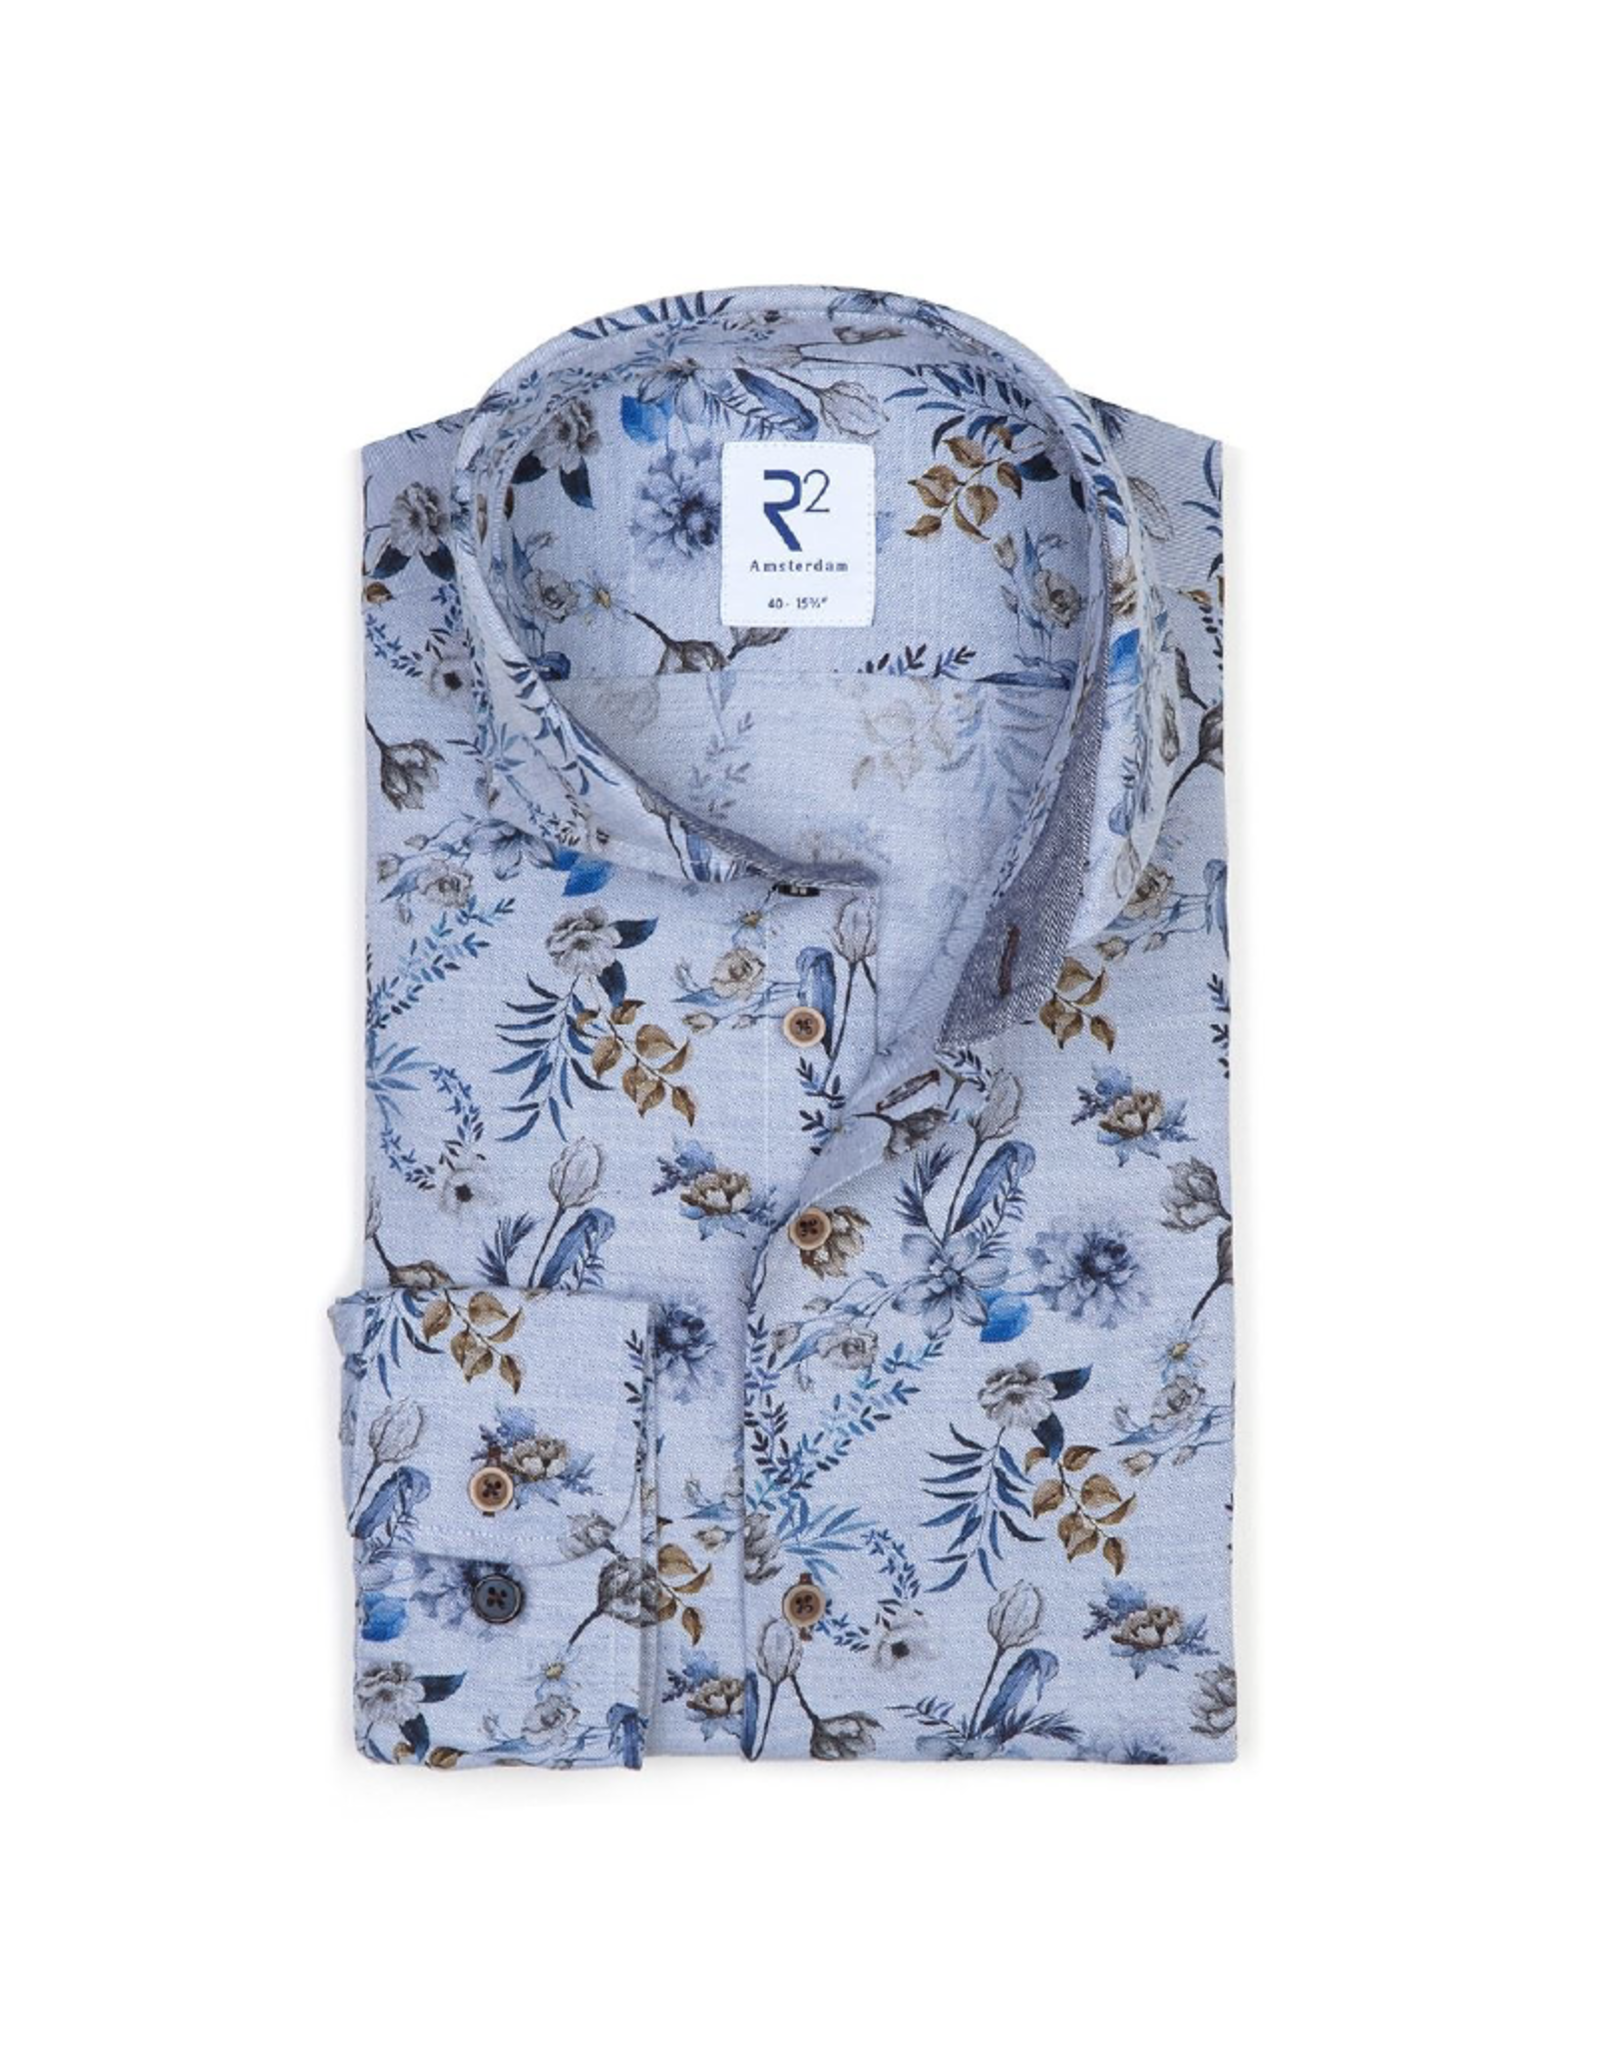 R2 Floral Long-Sleeve Button Up